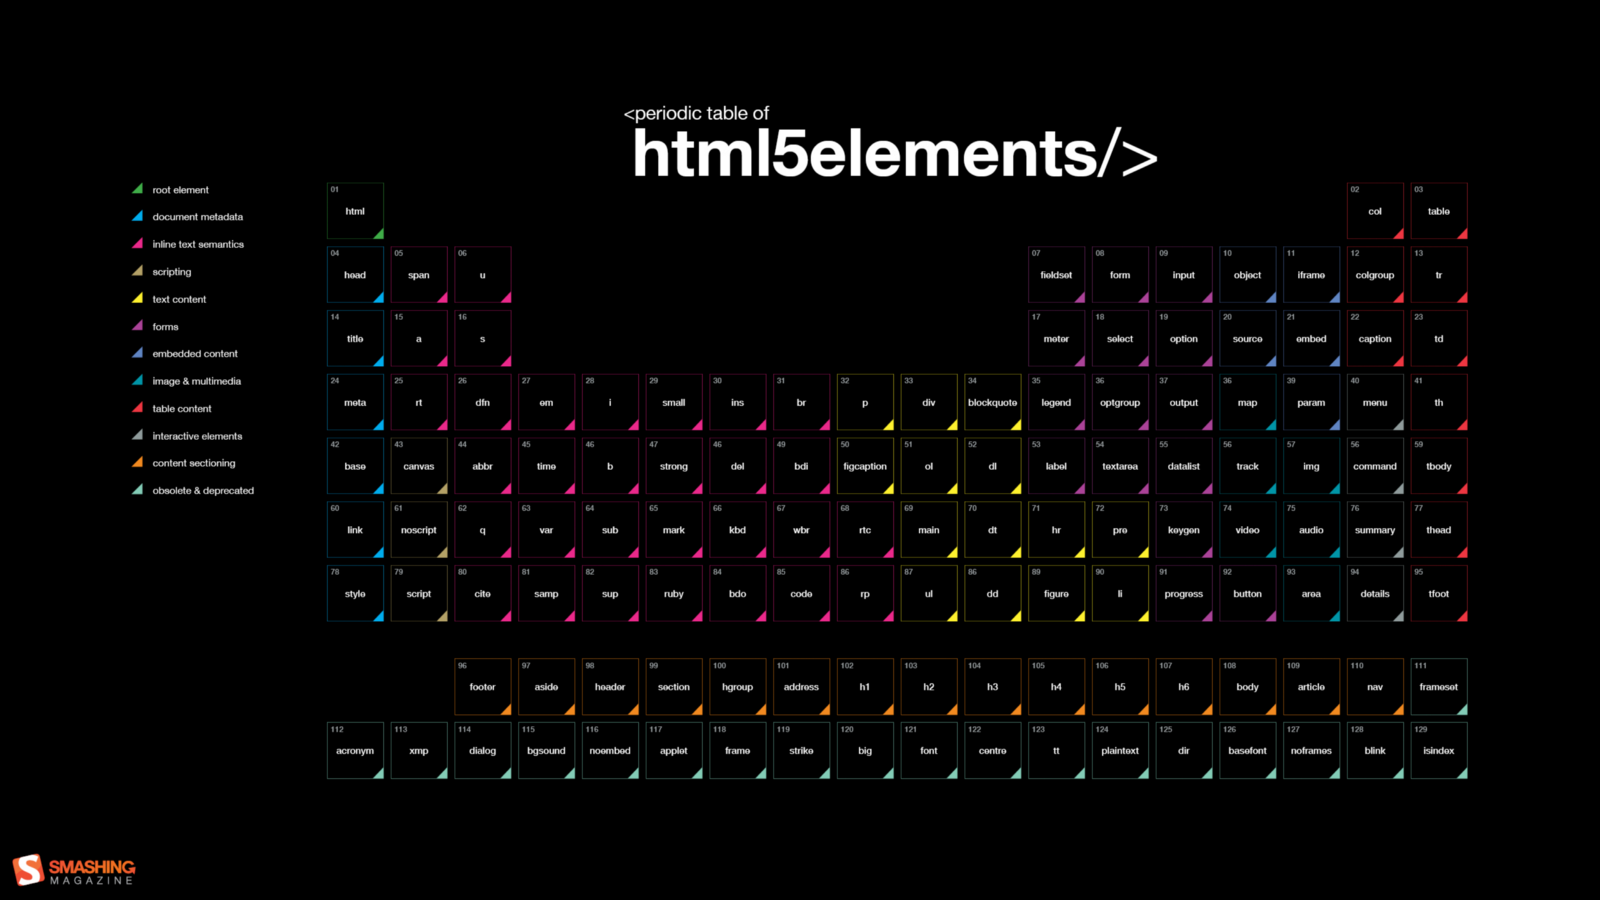 periodic table of HTML elements